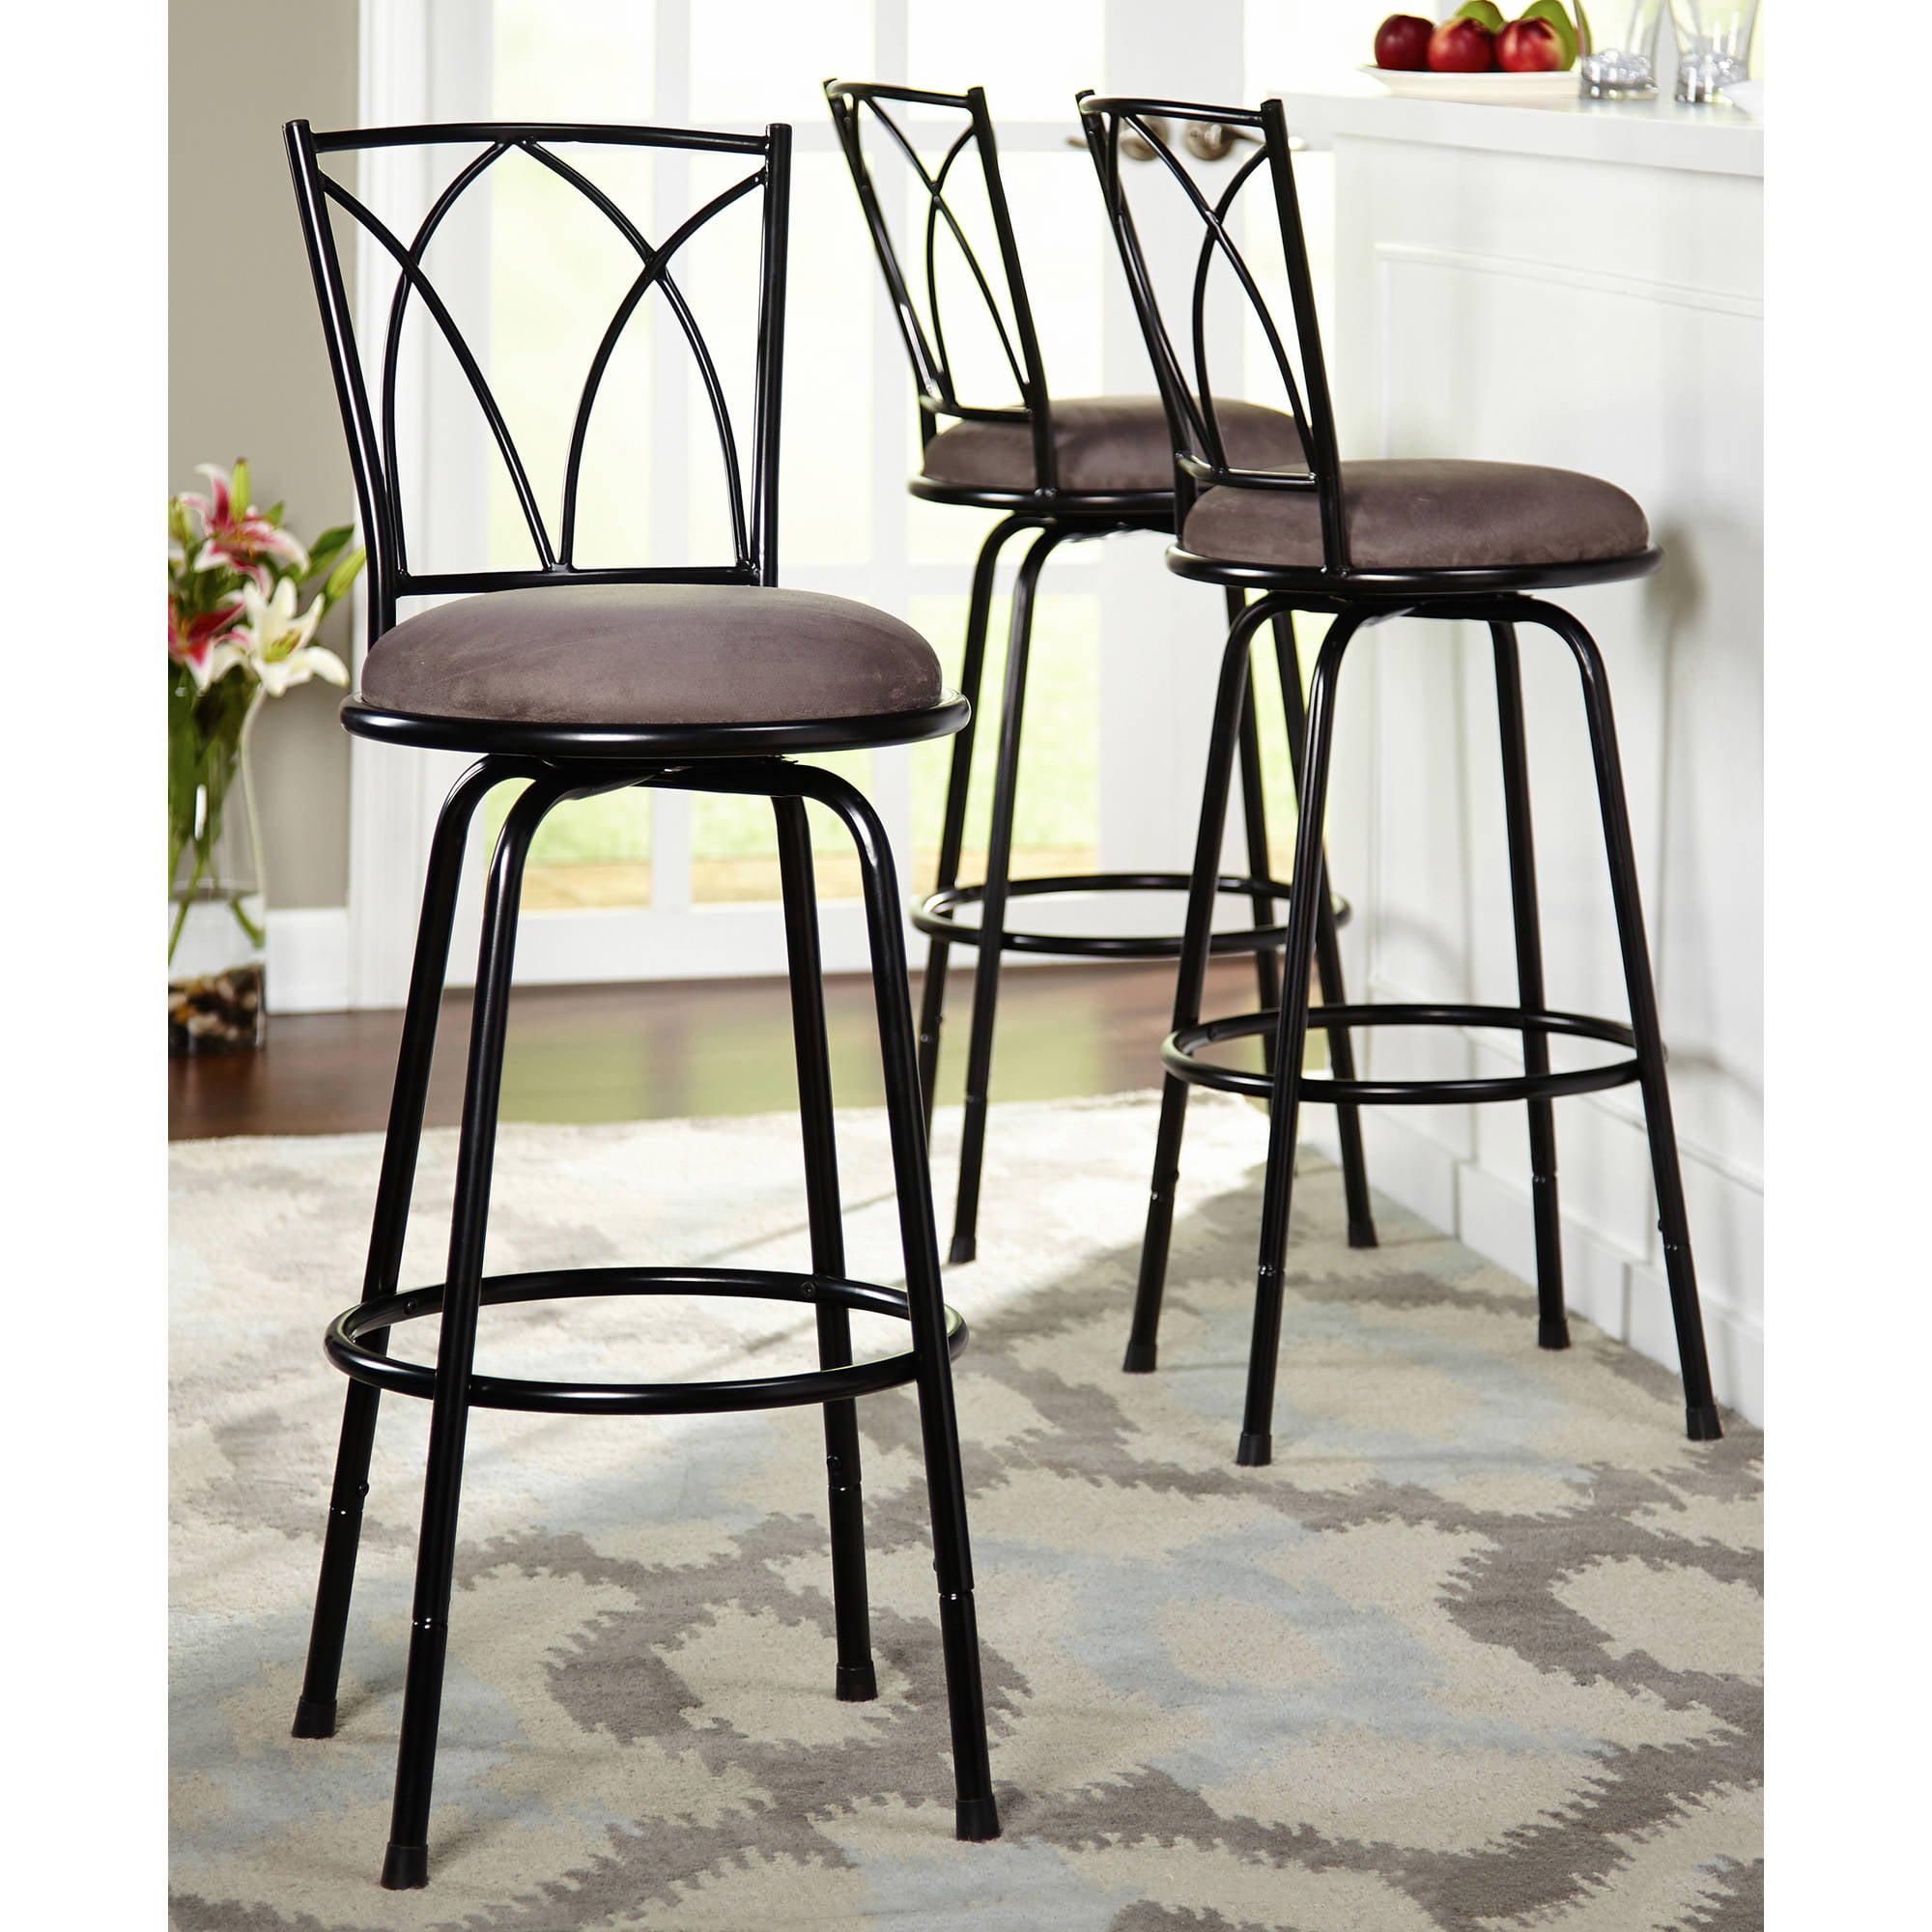 Tms Delta Adjule Height Metal Barstools Black Set Of 3